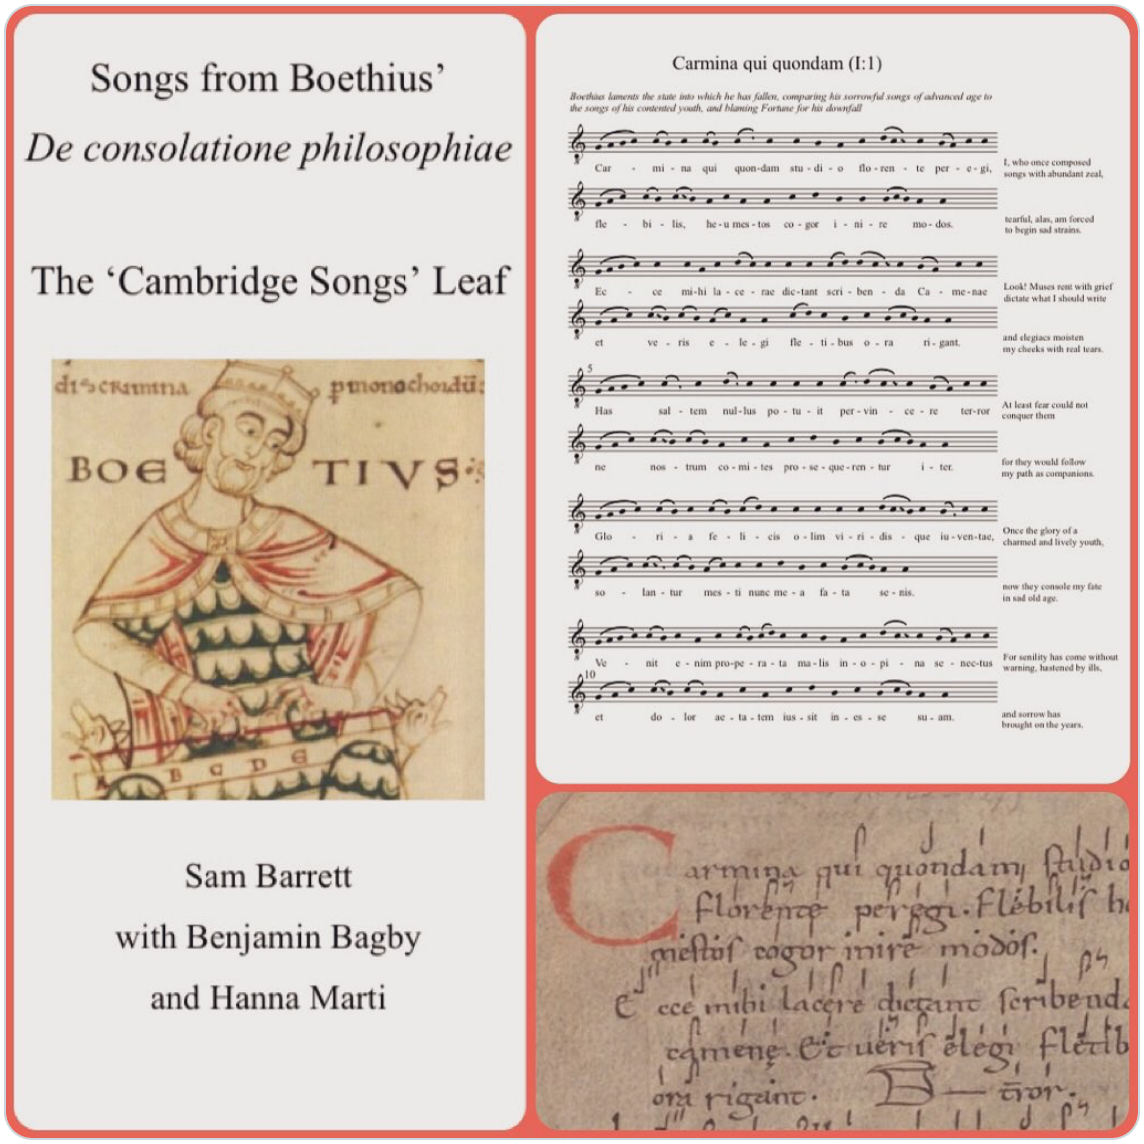 Lost Songs now freely available: New performance edition of Boethius' Songs of Consolation